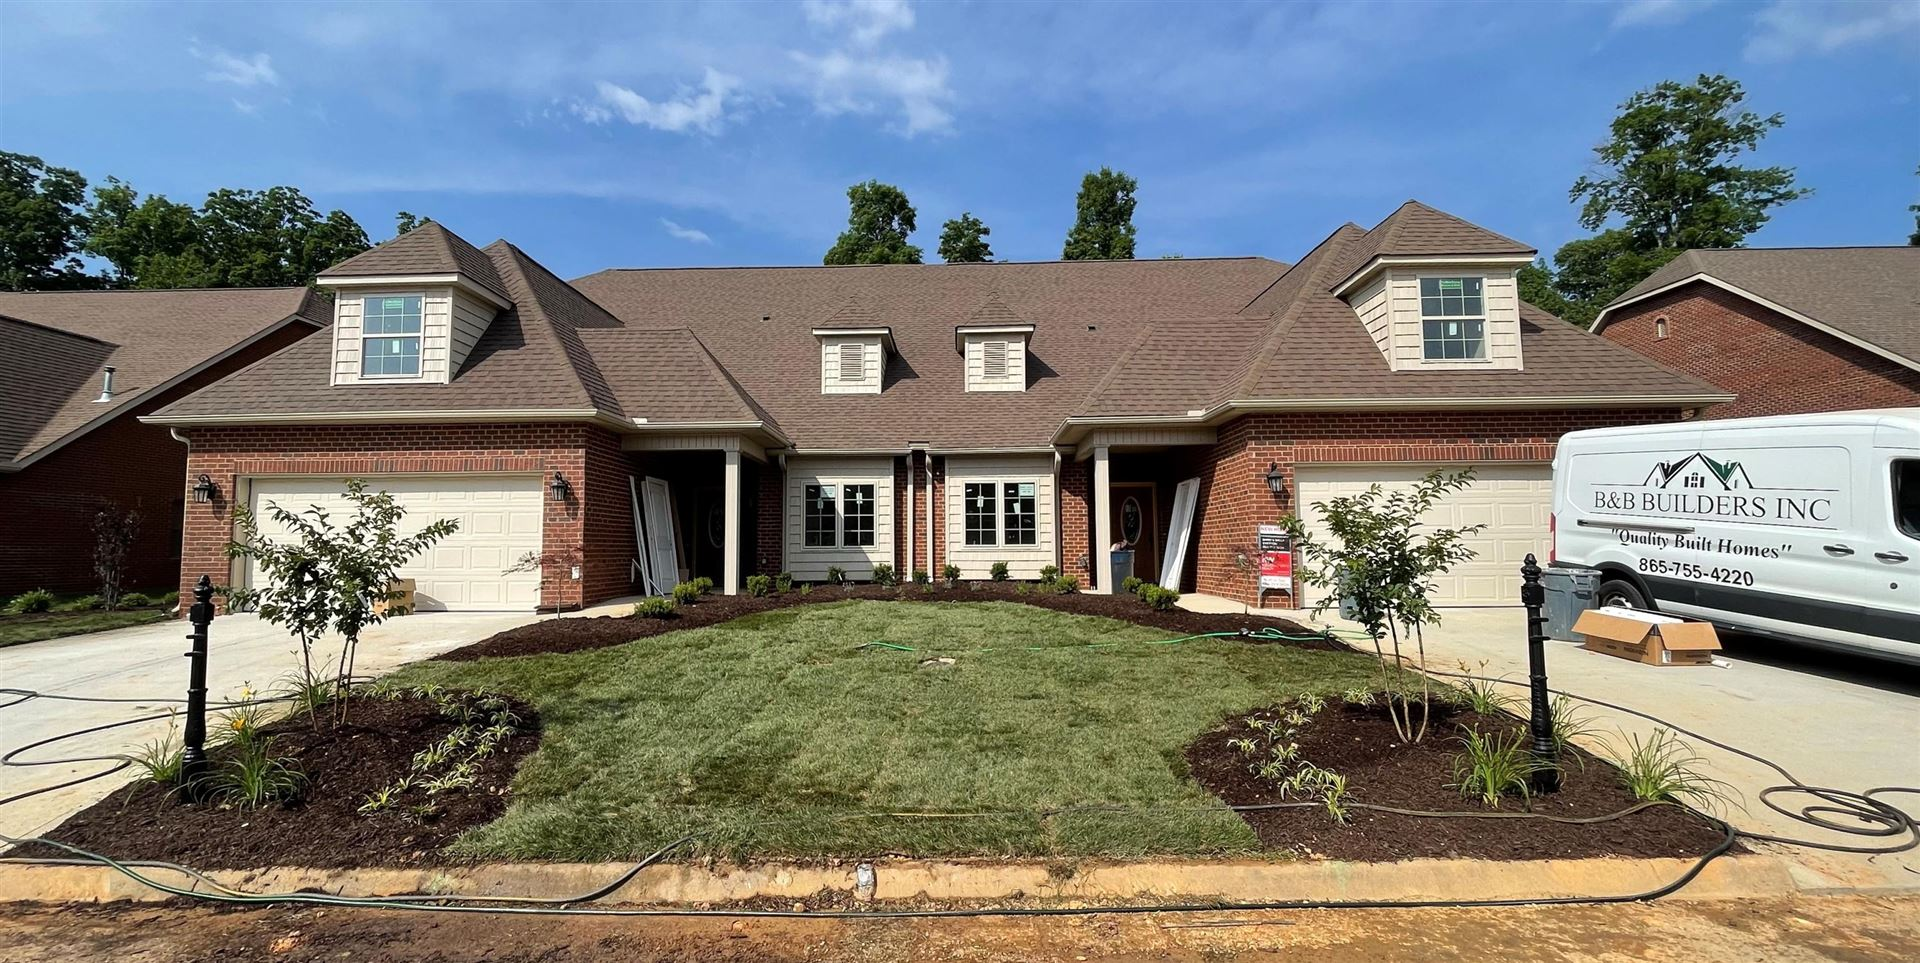 Photo of 2524 Maple Branch (Lot 190) Lane, Knoxville, TN 37912 (MLS # 1153355)